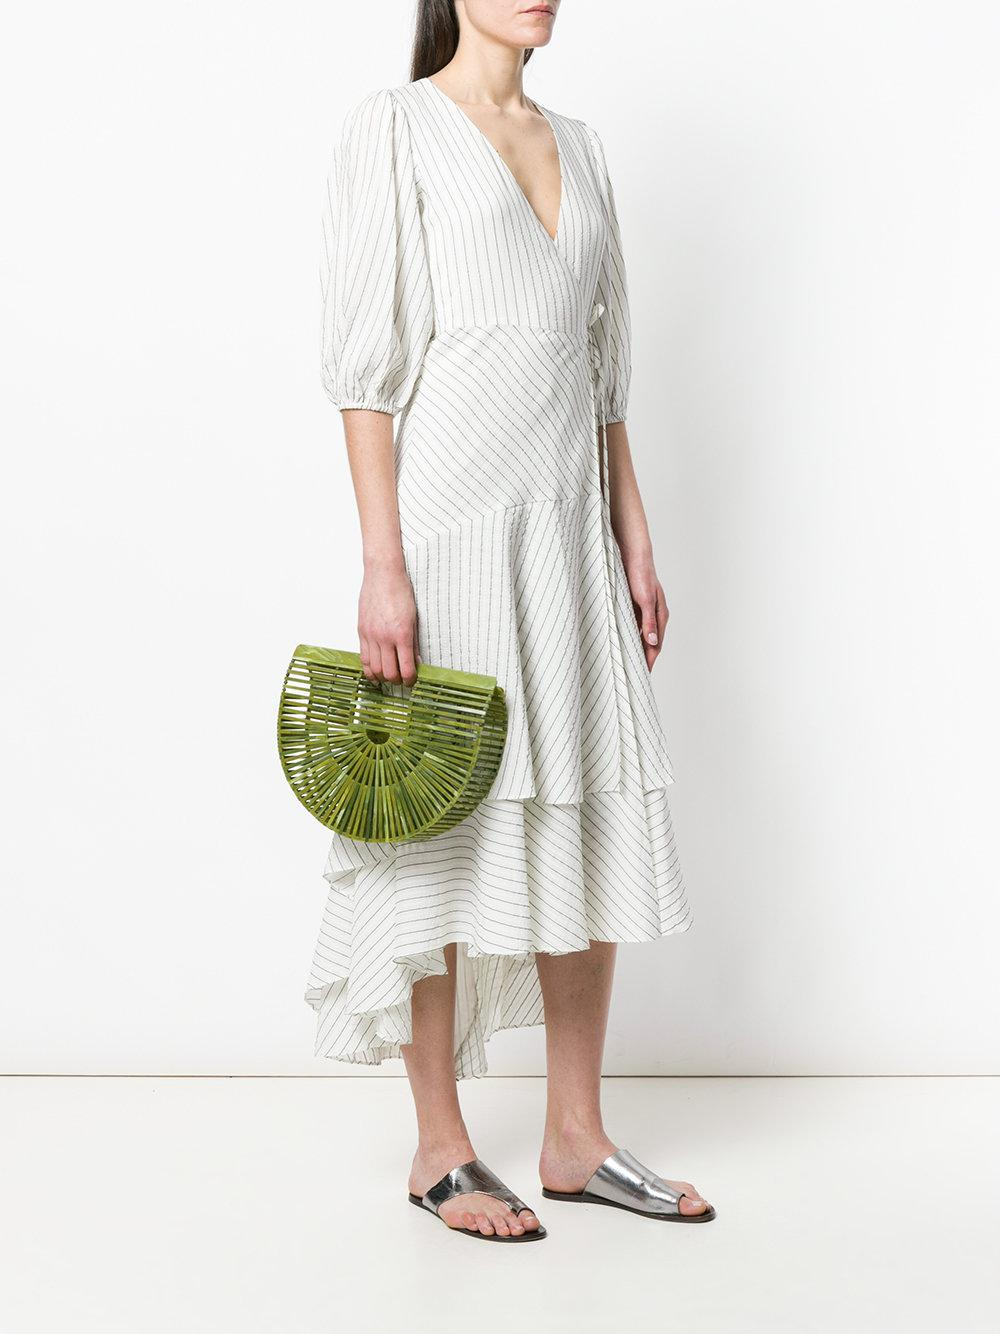 Cult Gaia Transparent Rounded Tote in Green